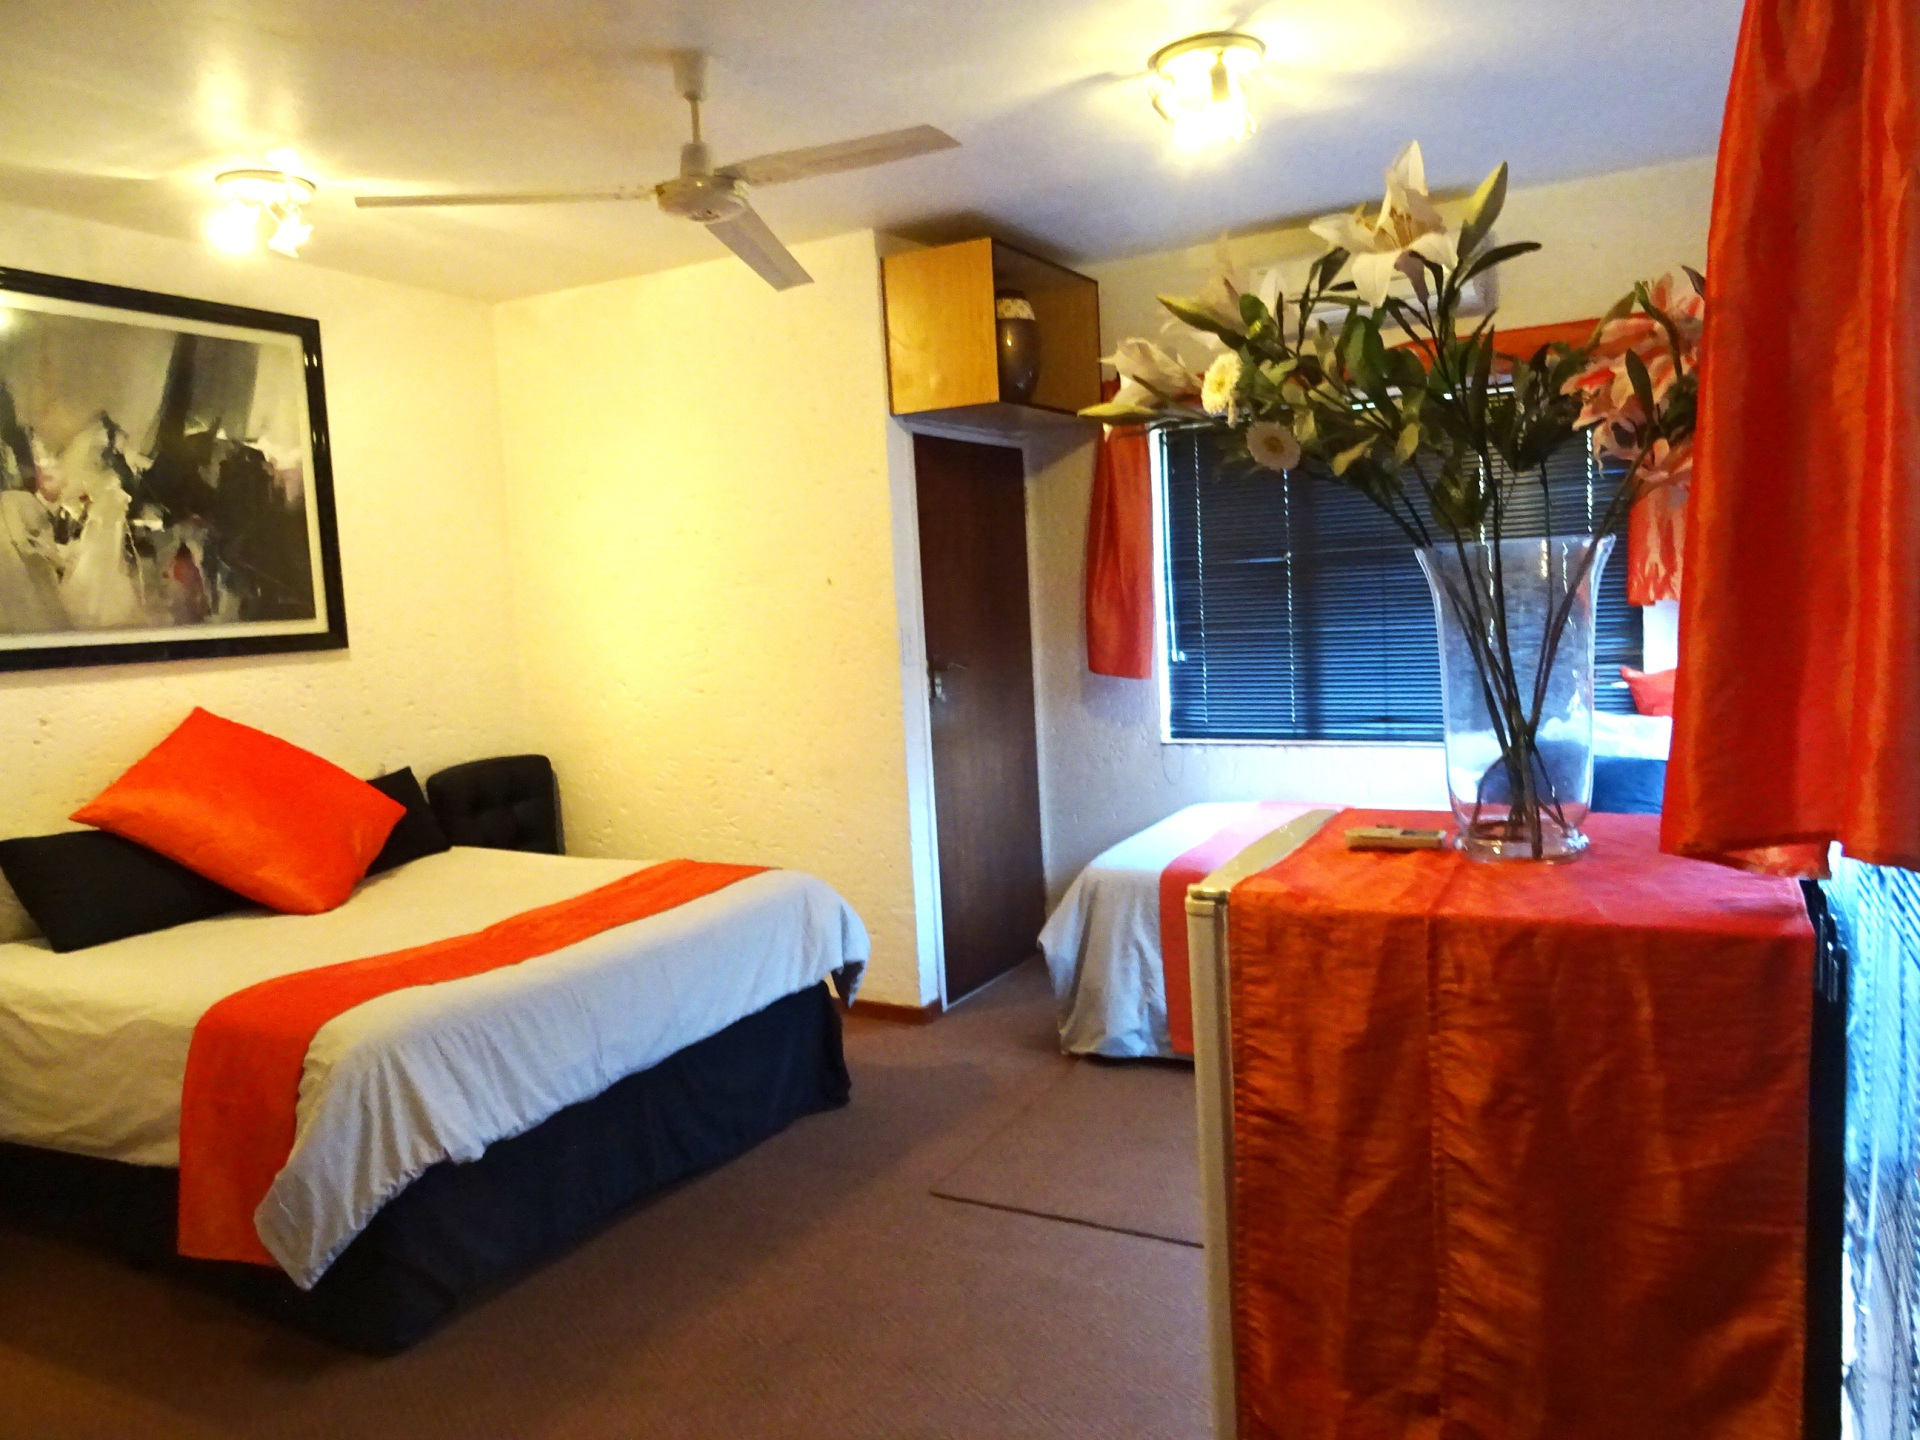 Queen size bed & fridge in 4th bedroom, Accommodation Hartbeespoort dam, sleeping 11, 2,5 bathrooms